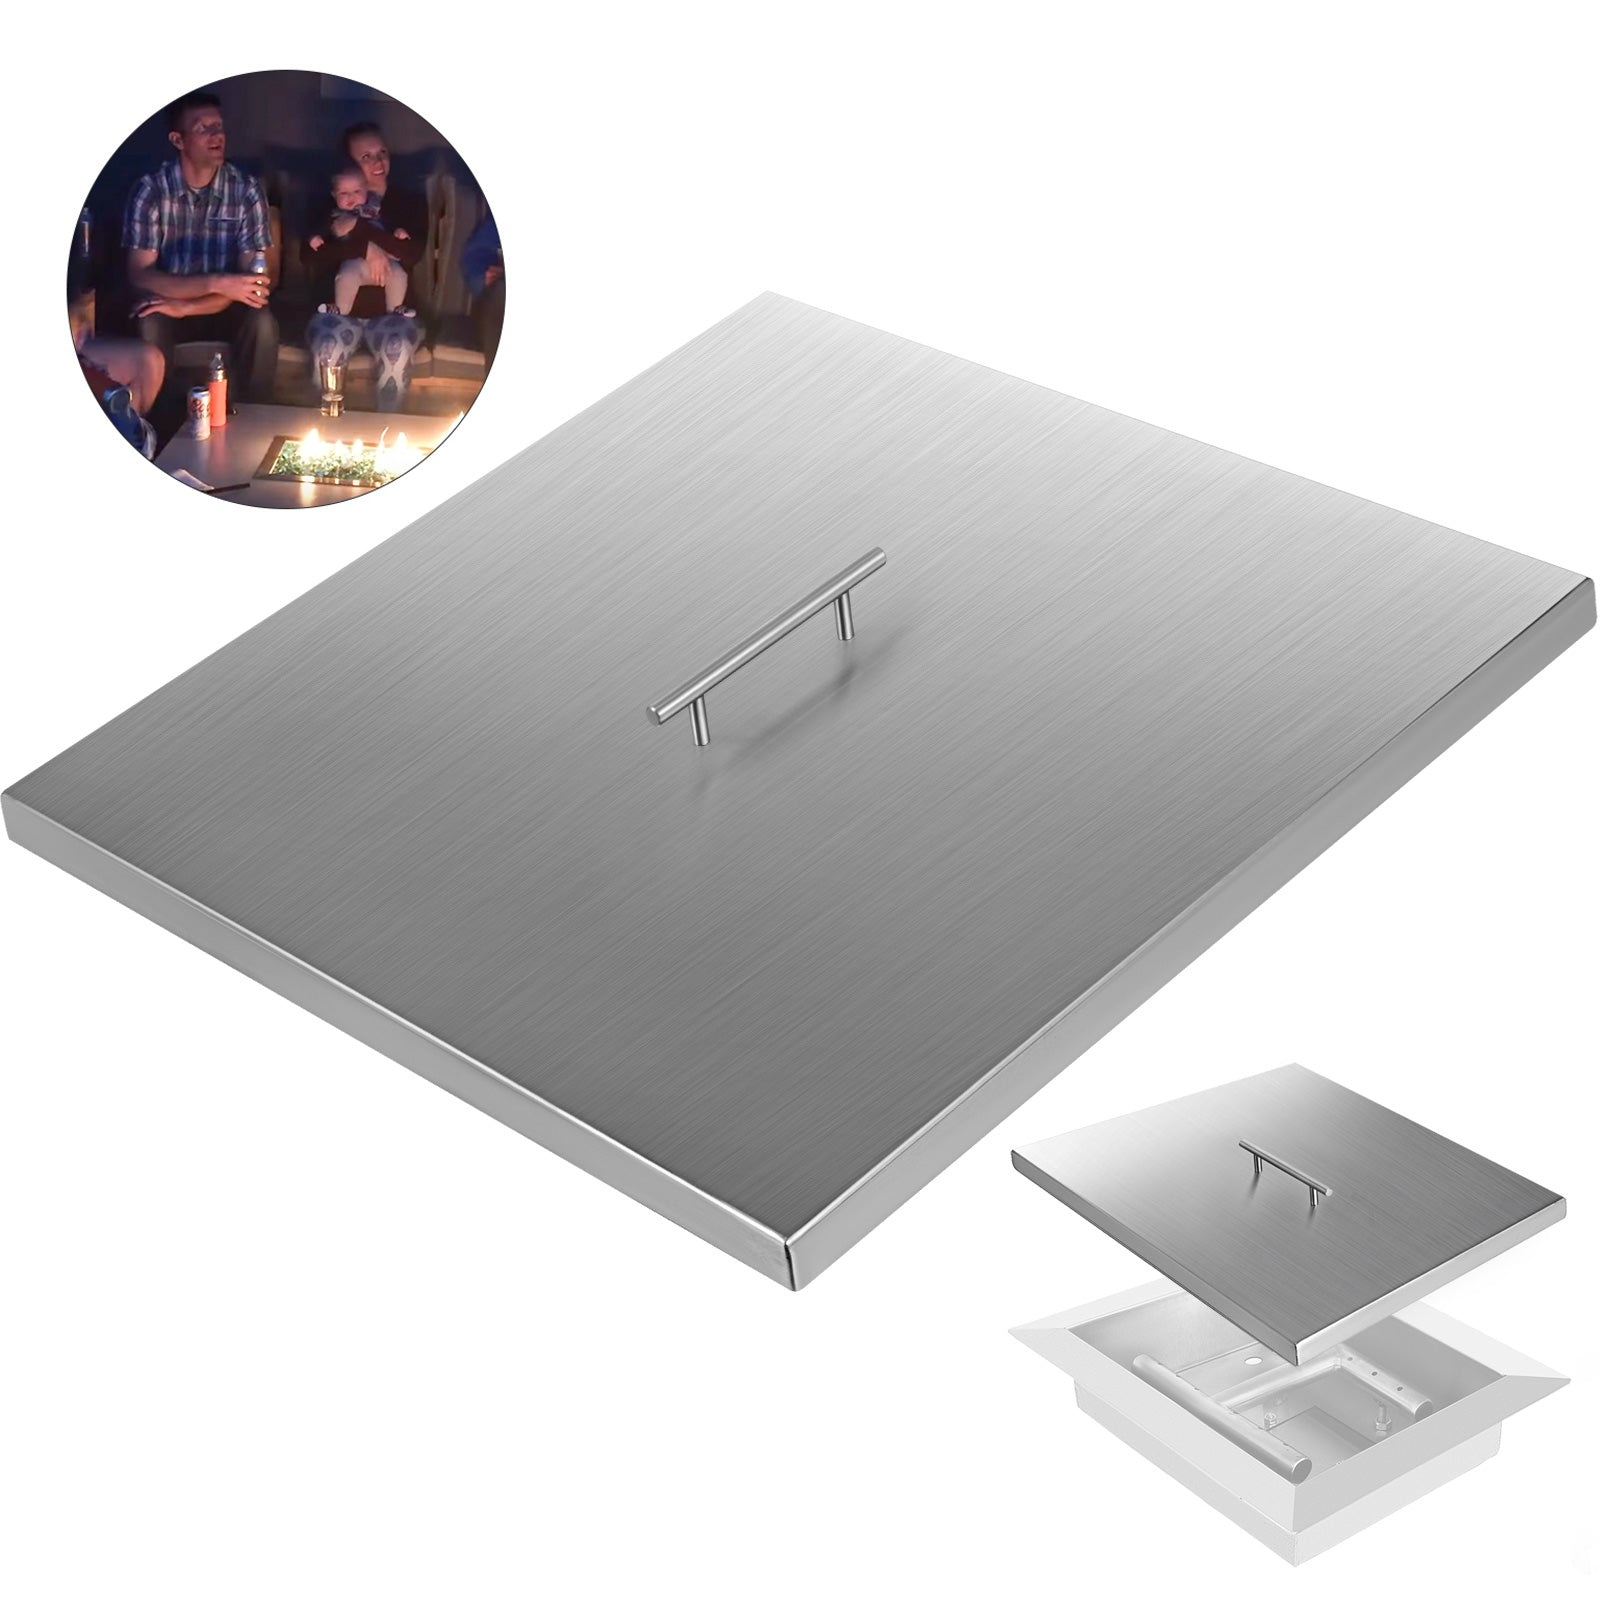 "27""x 27"" Fire Pit Cover Lid For Linear Burner Pan Outdoor Patio Backyard Indoor"